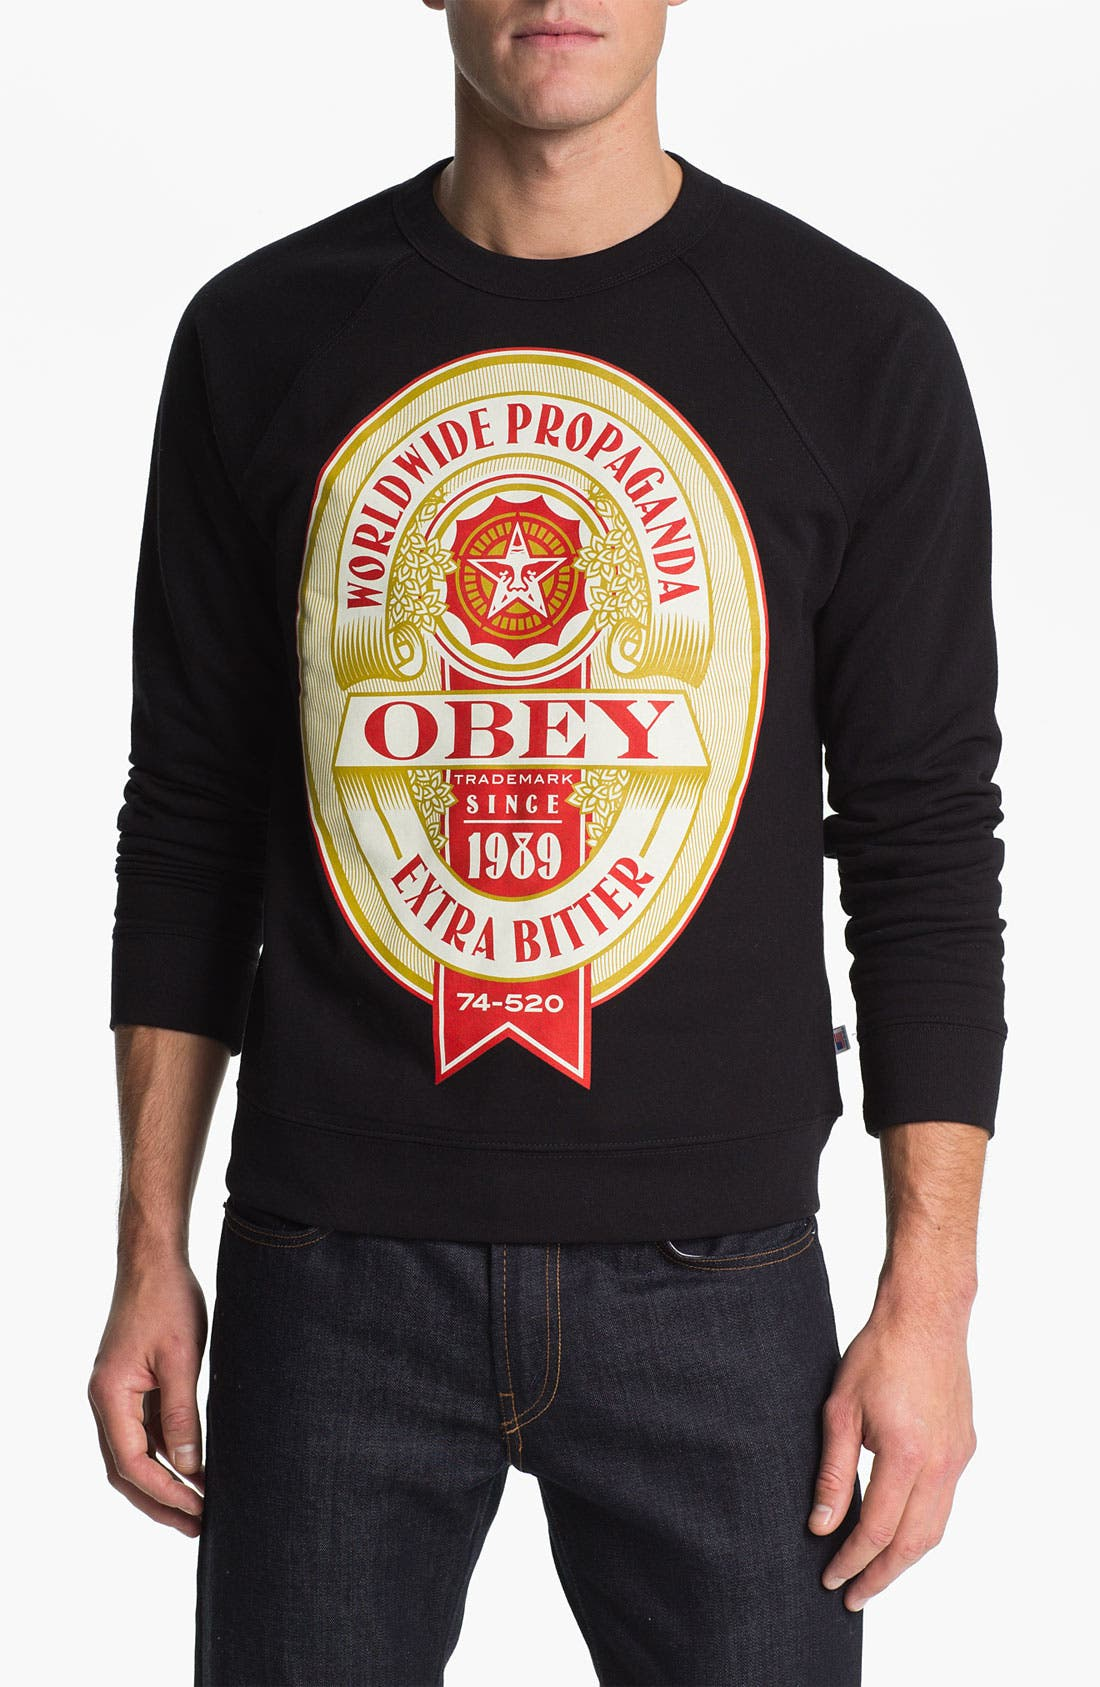 Main Image - Obey 'Extra Bitter' Crewneck Fleece Sweatshirt